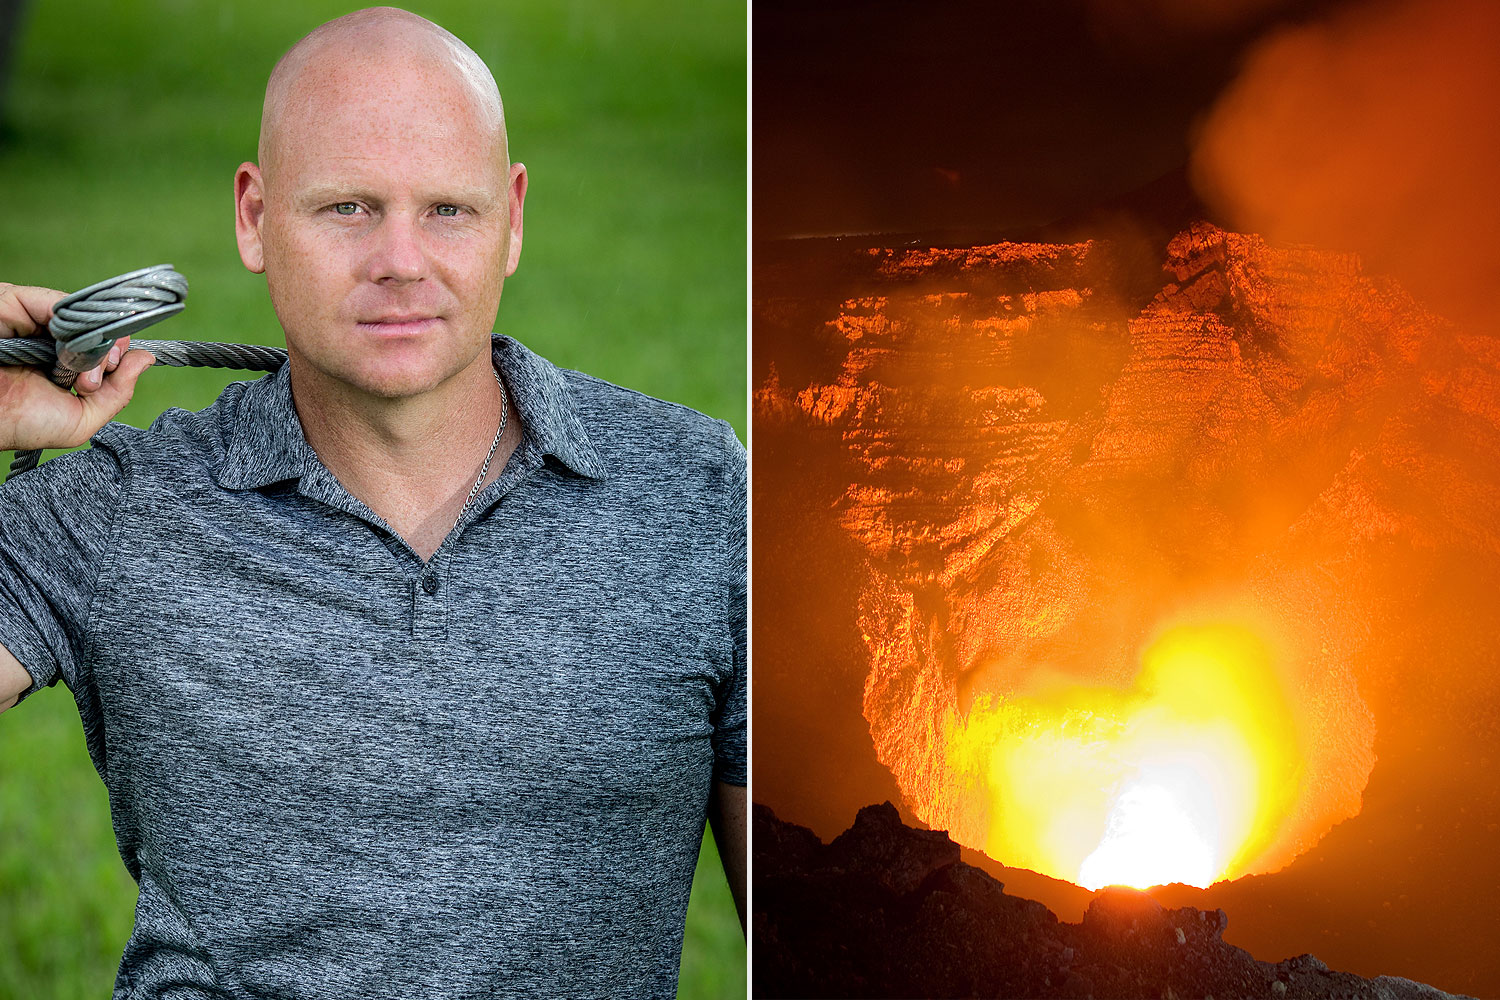 Nik Wallenda answers our burning questions about walking on a wire over a volcano